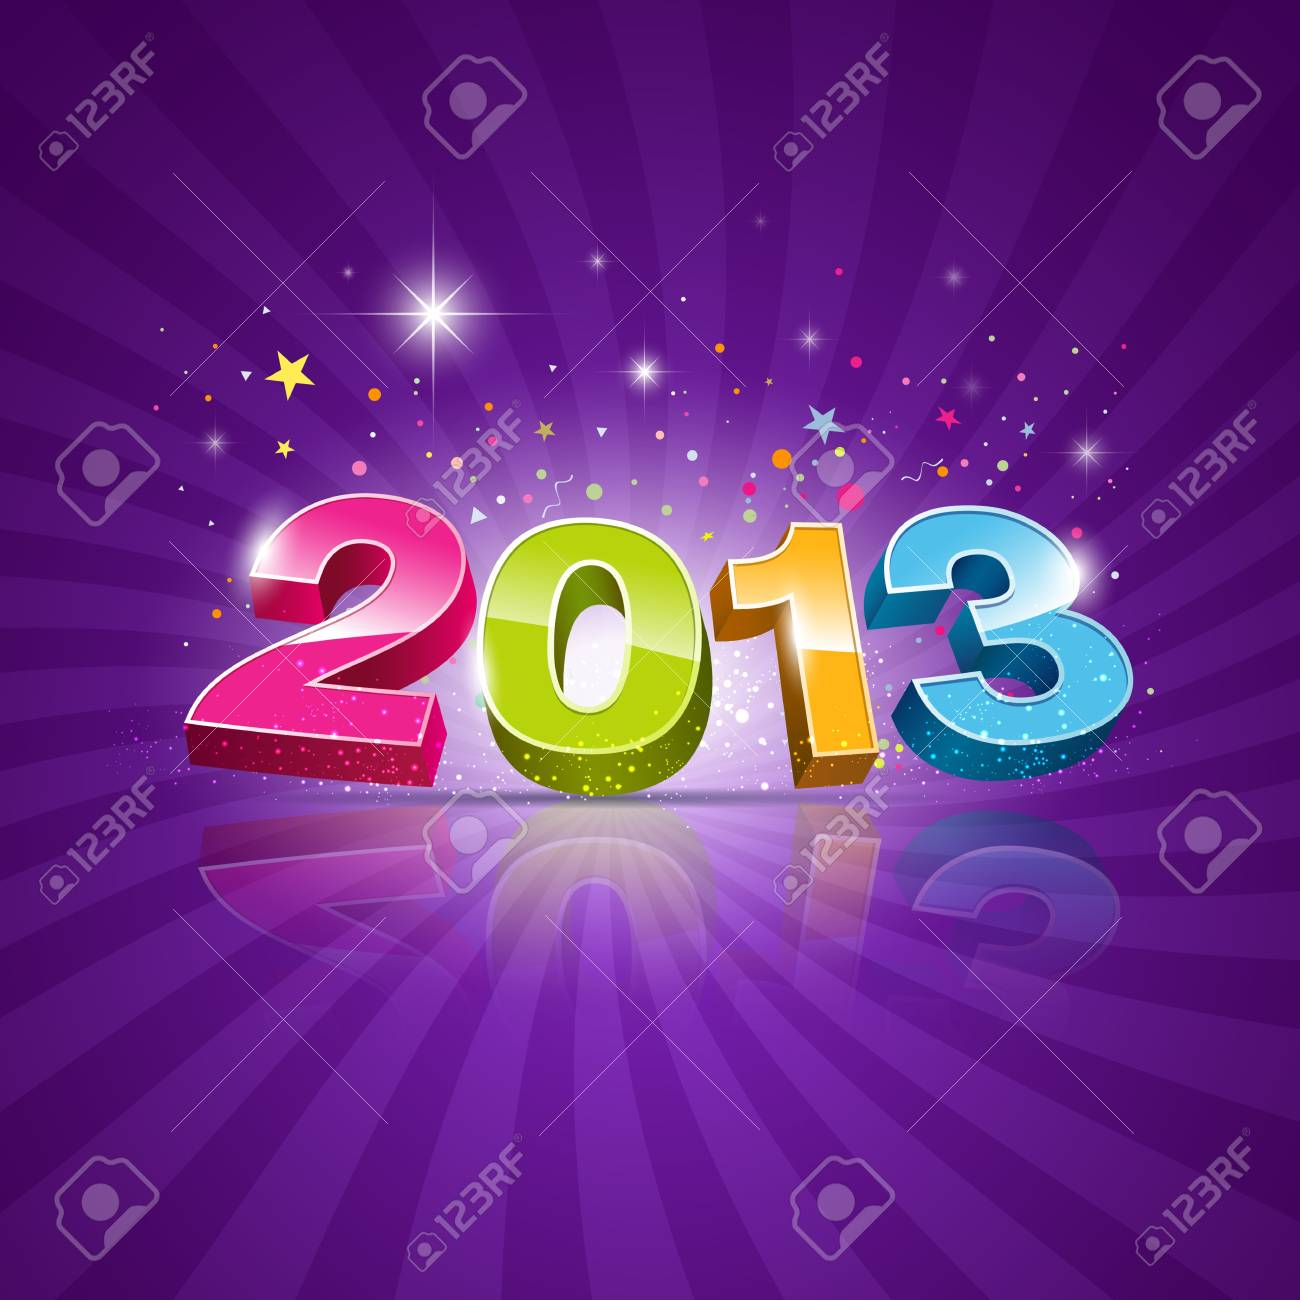 2013 Message colorful background, vector illustration Stock Vector - 16260429